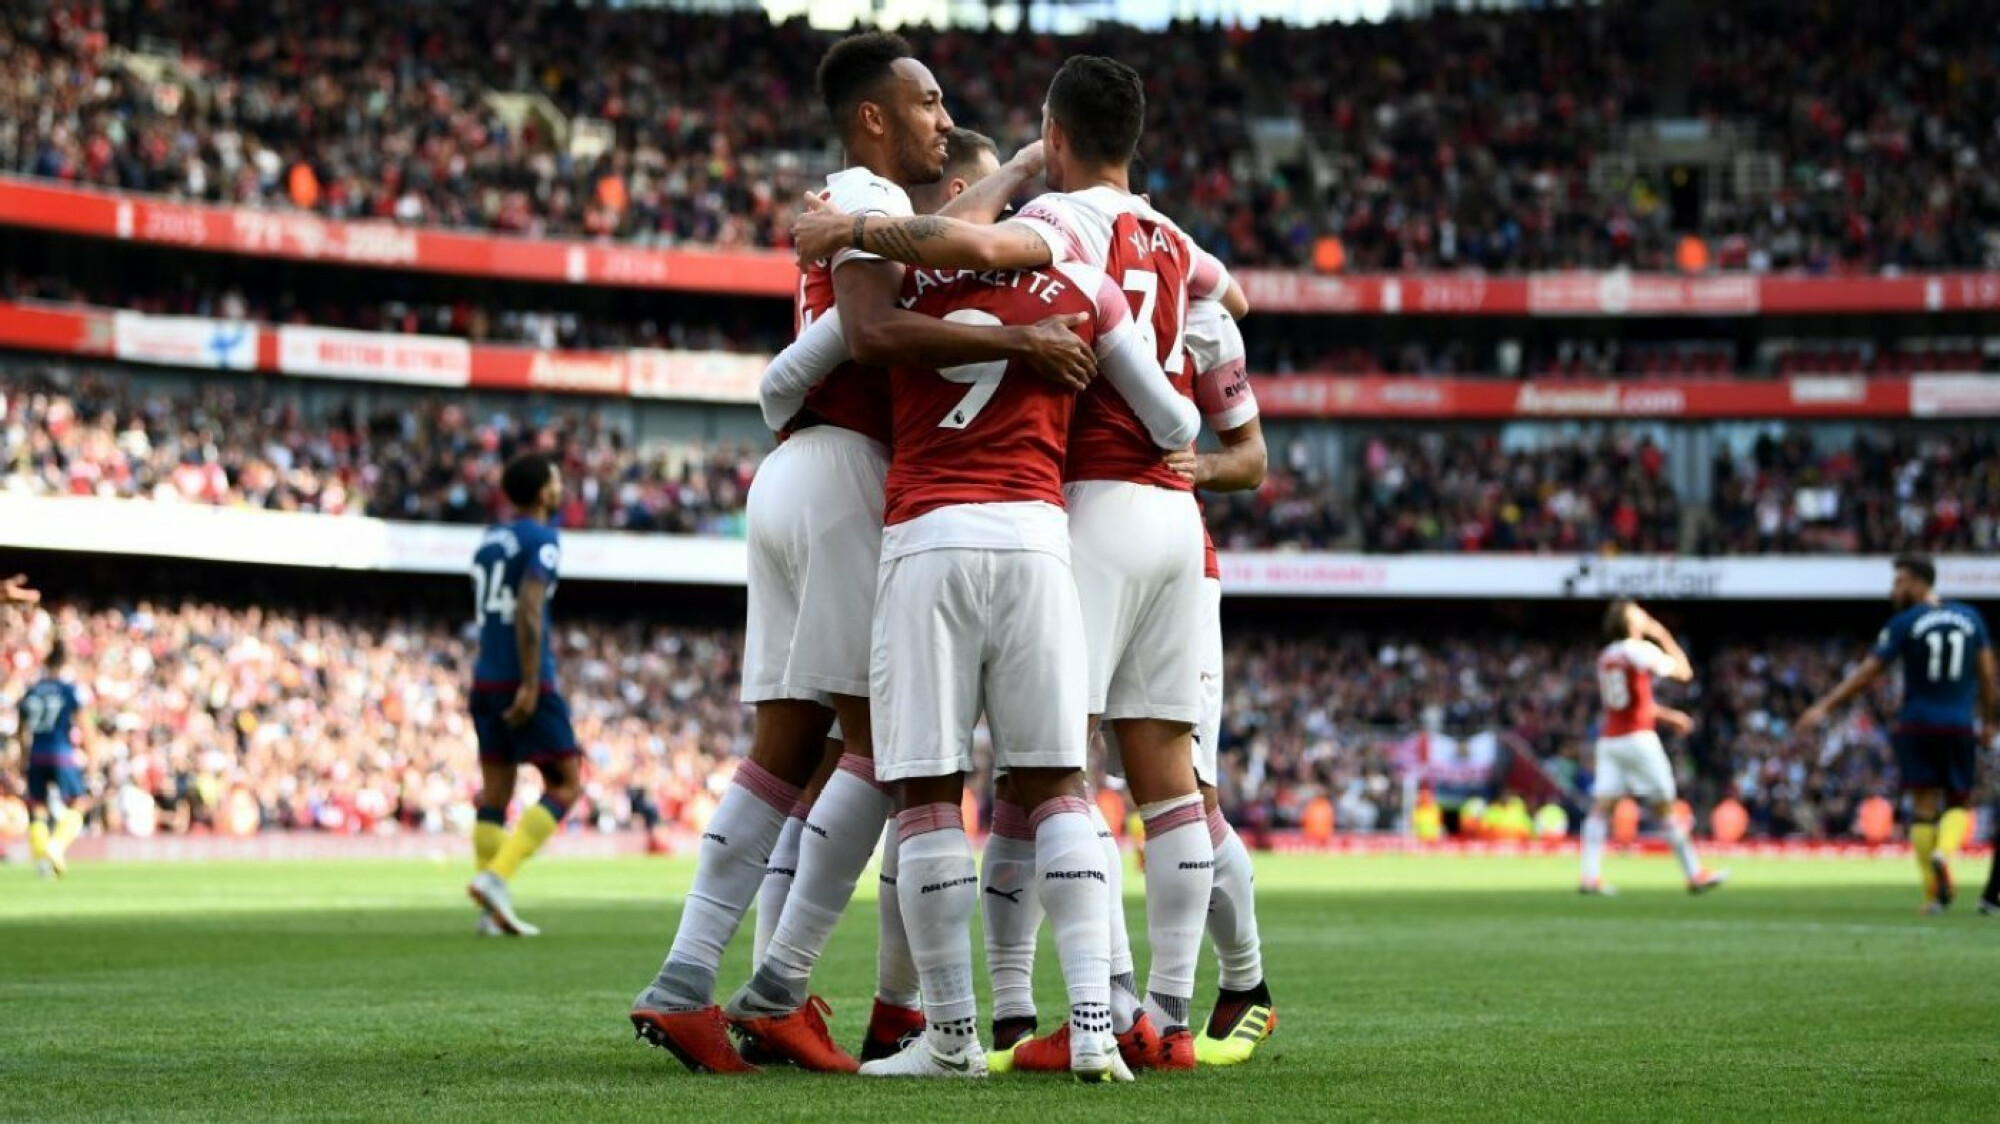 Arsenal finally win under Unai Emery in a mixed performance